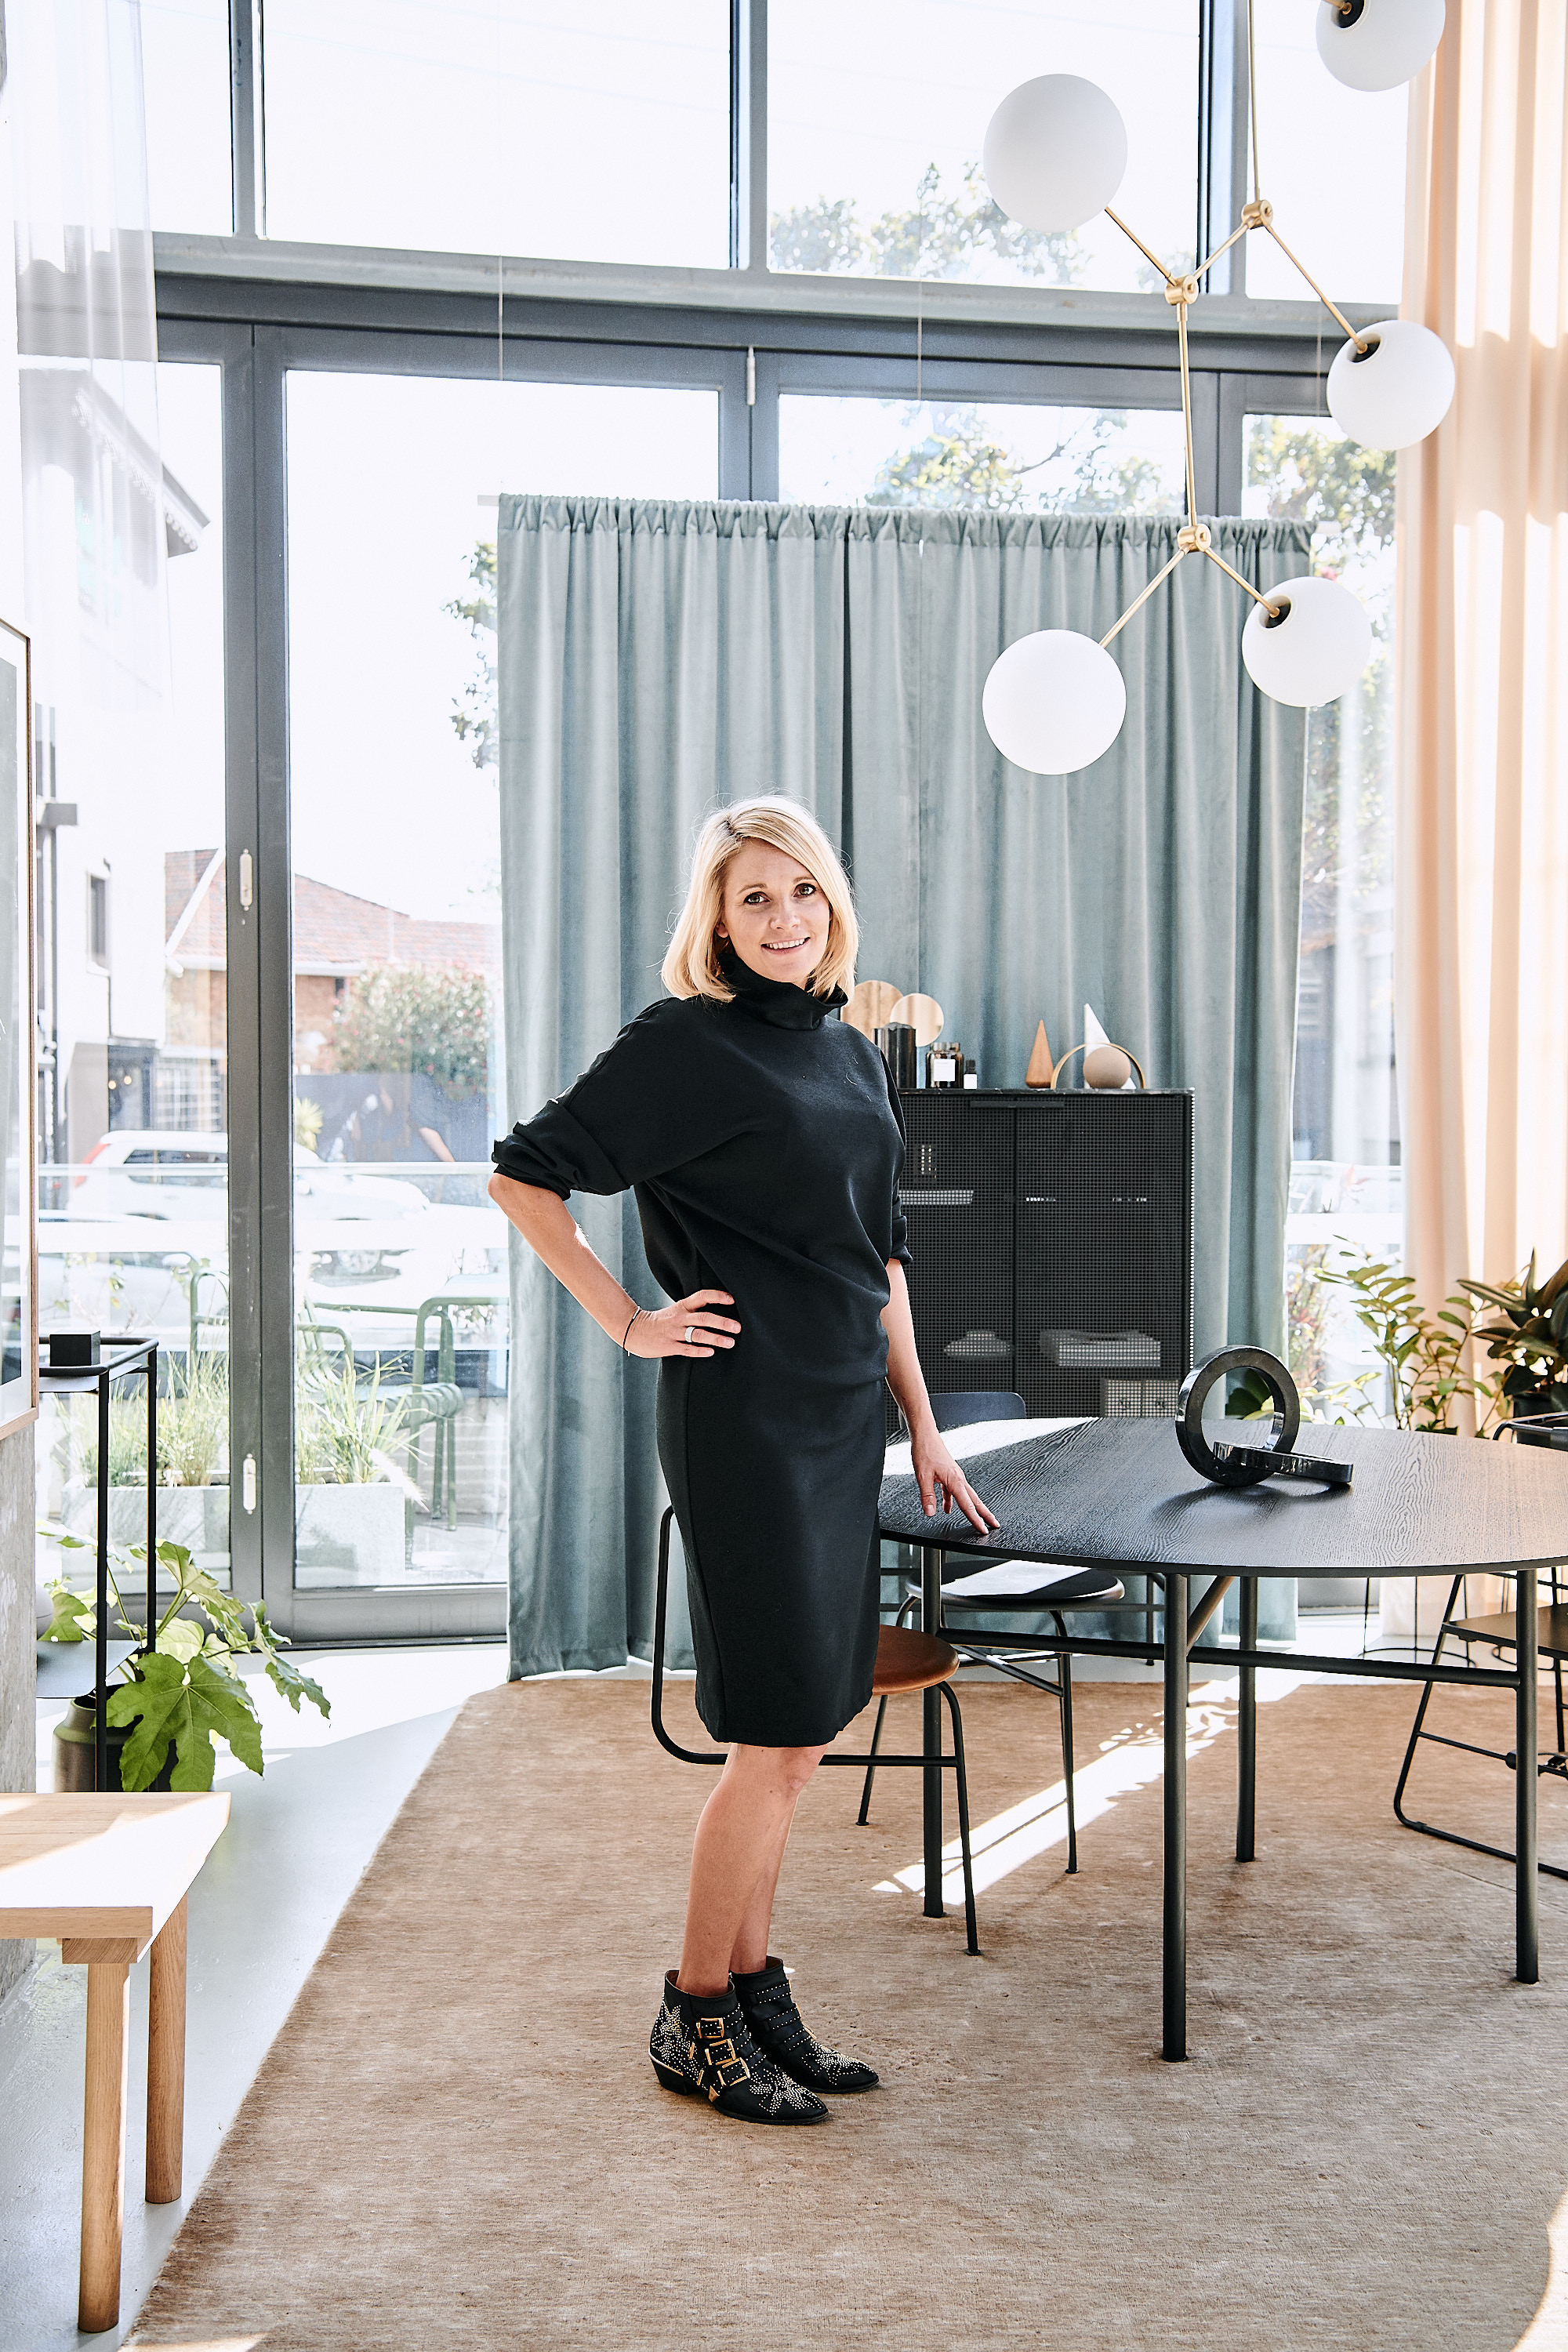 Store owner Christina Fedders